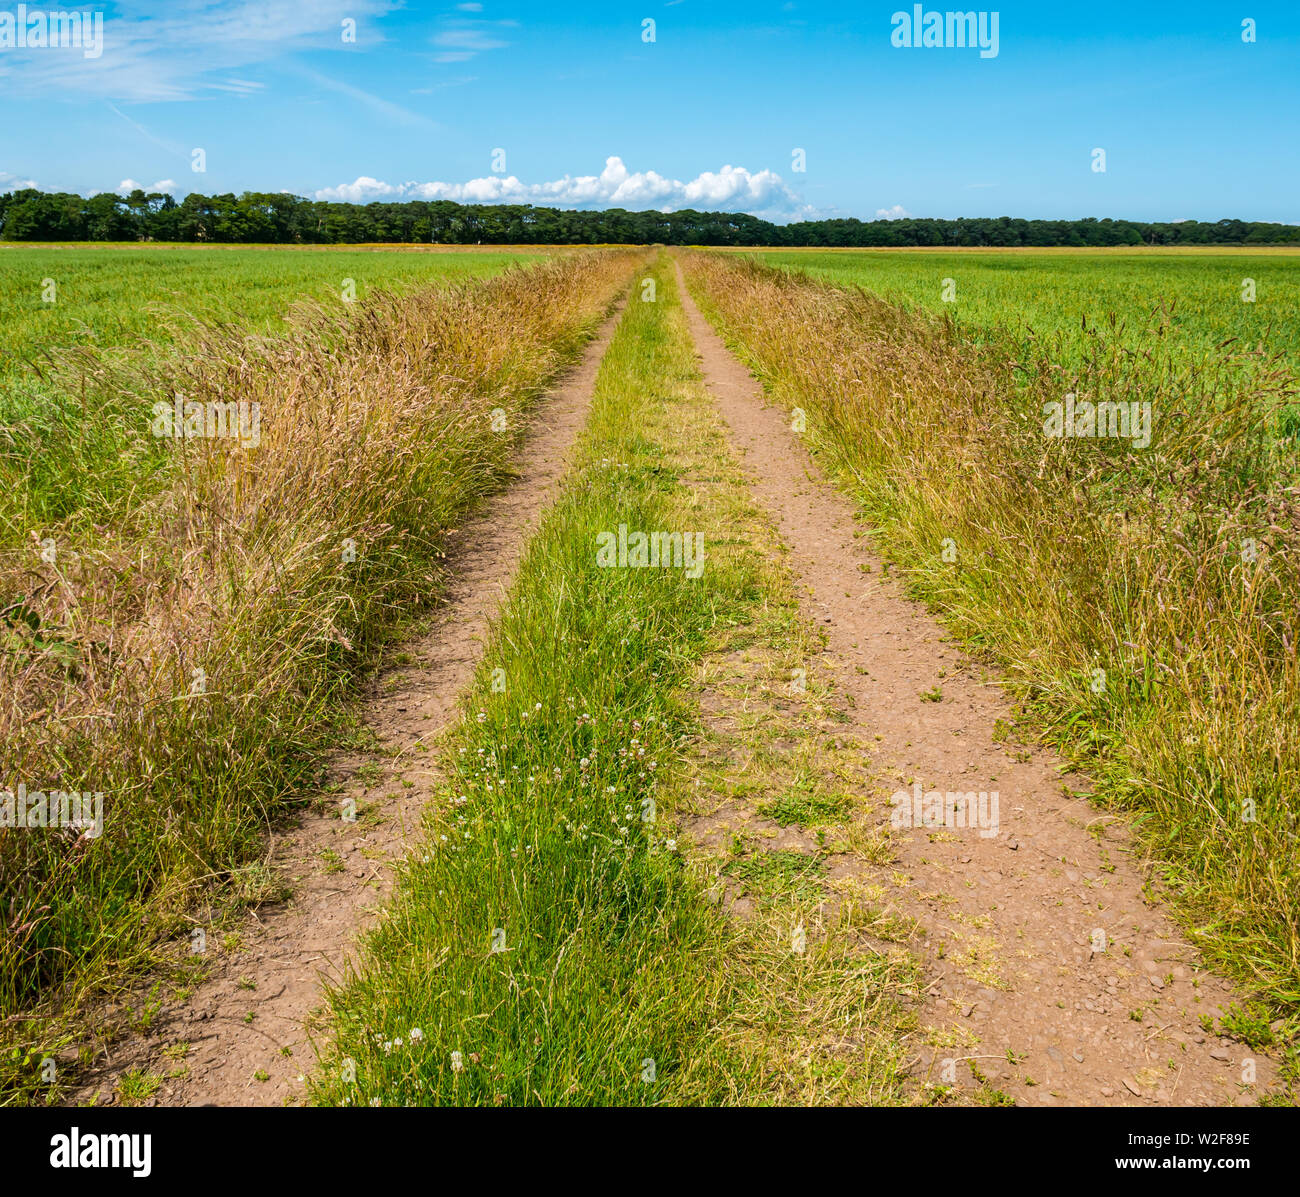 Straight track leading into distance to nowhere thorugh grassy Summer field on sunny day, East Lothian, Scotland, Uk - Stock Image